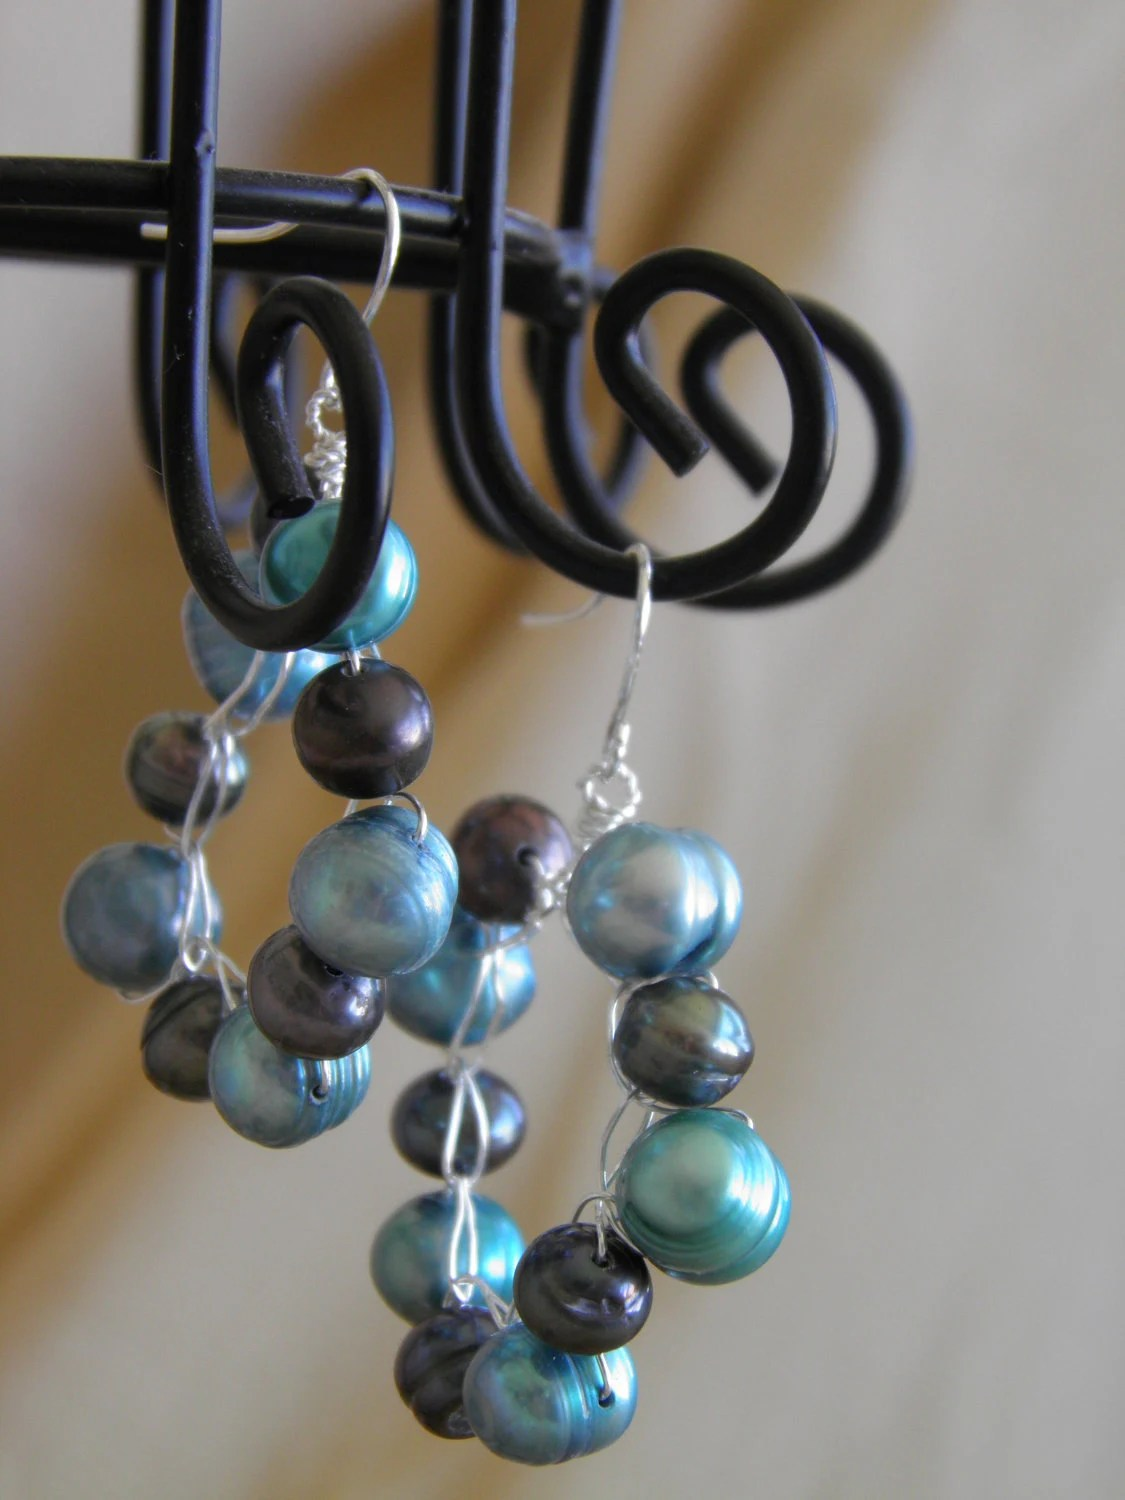 Teal & Peacock Freshwater Pearl Woven Boho Beaded Hoop Earrings